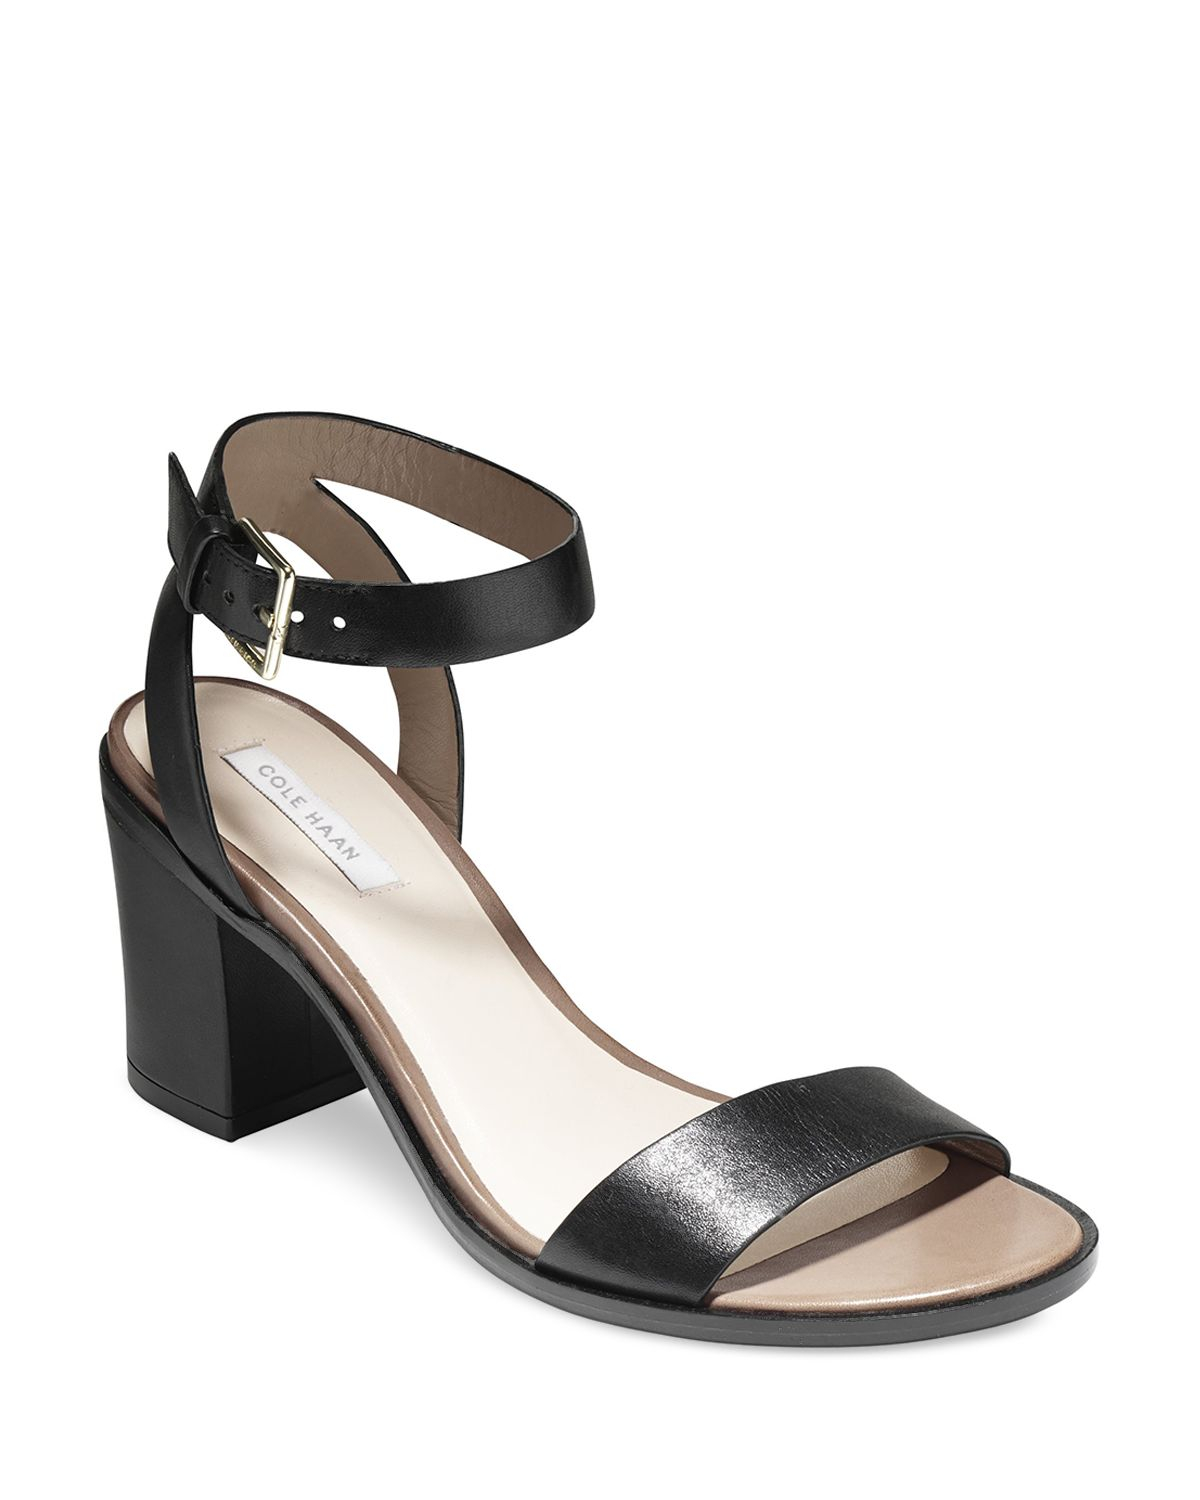 Cole haan Ankle Strap Sandals - Cambon City Mid Heel in Black | Lyst